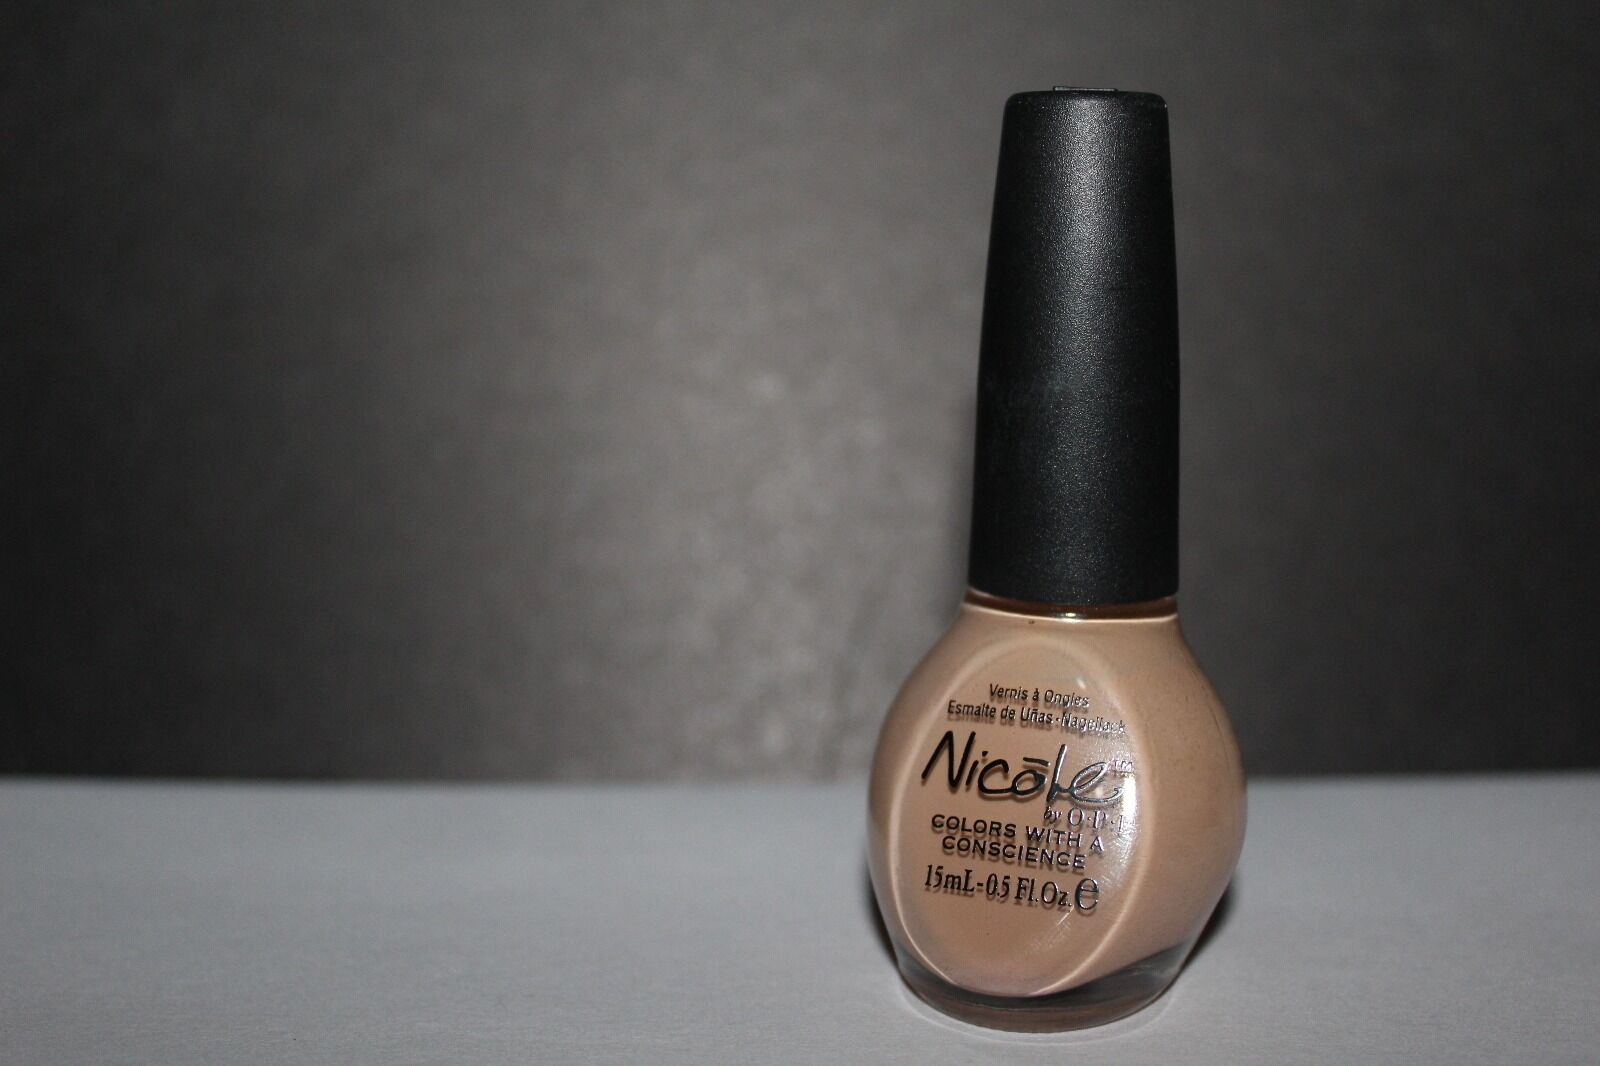 Nicole by OPI - Nail Lacquer Fall for Her - Ni 183 VHTF | eBay